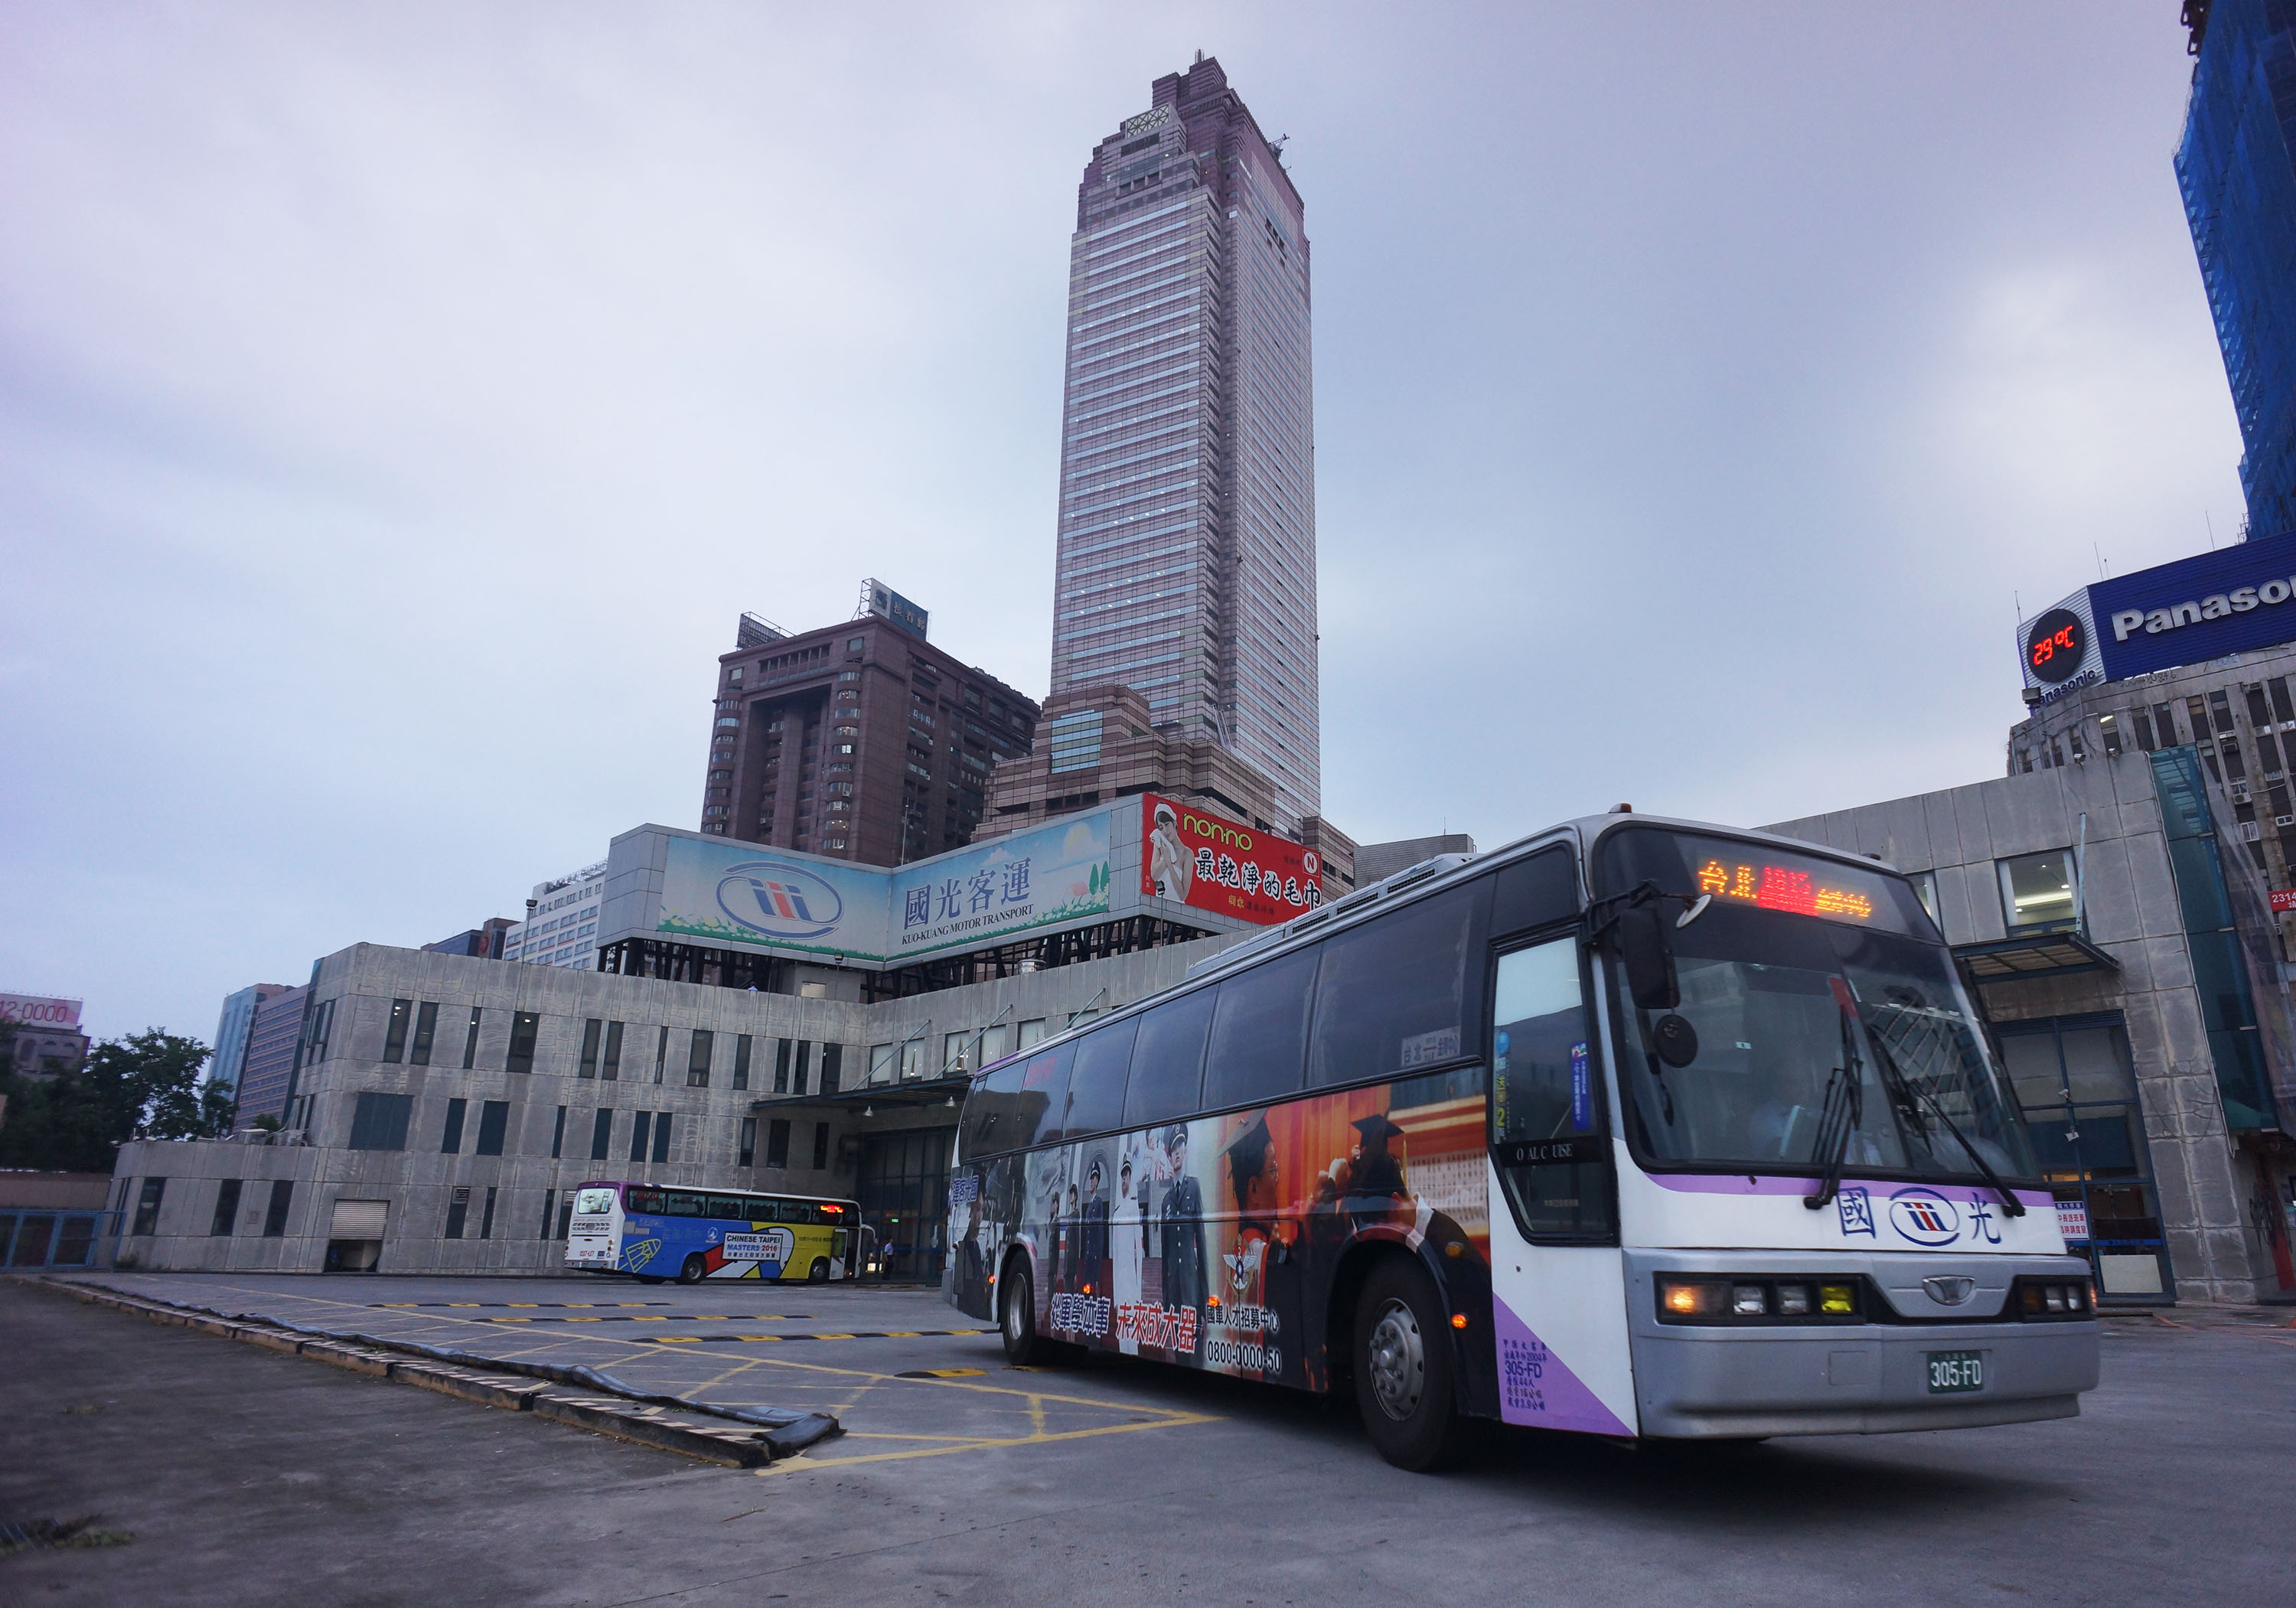 Taipei West Bus Station passes into history